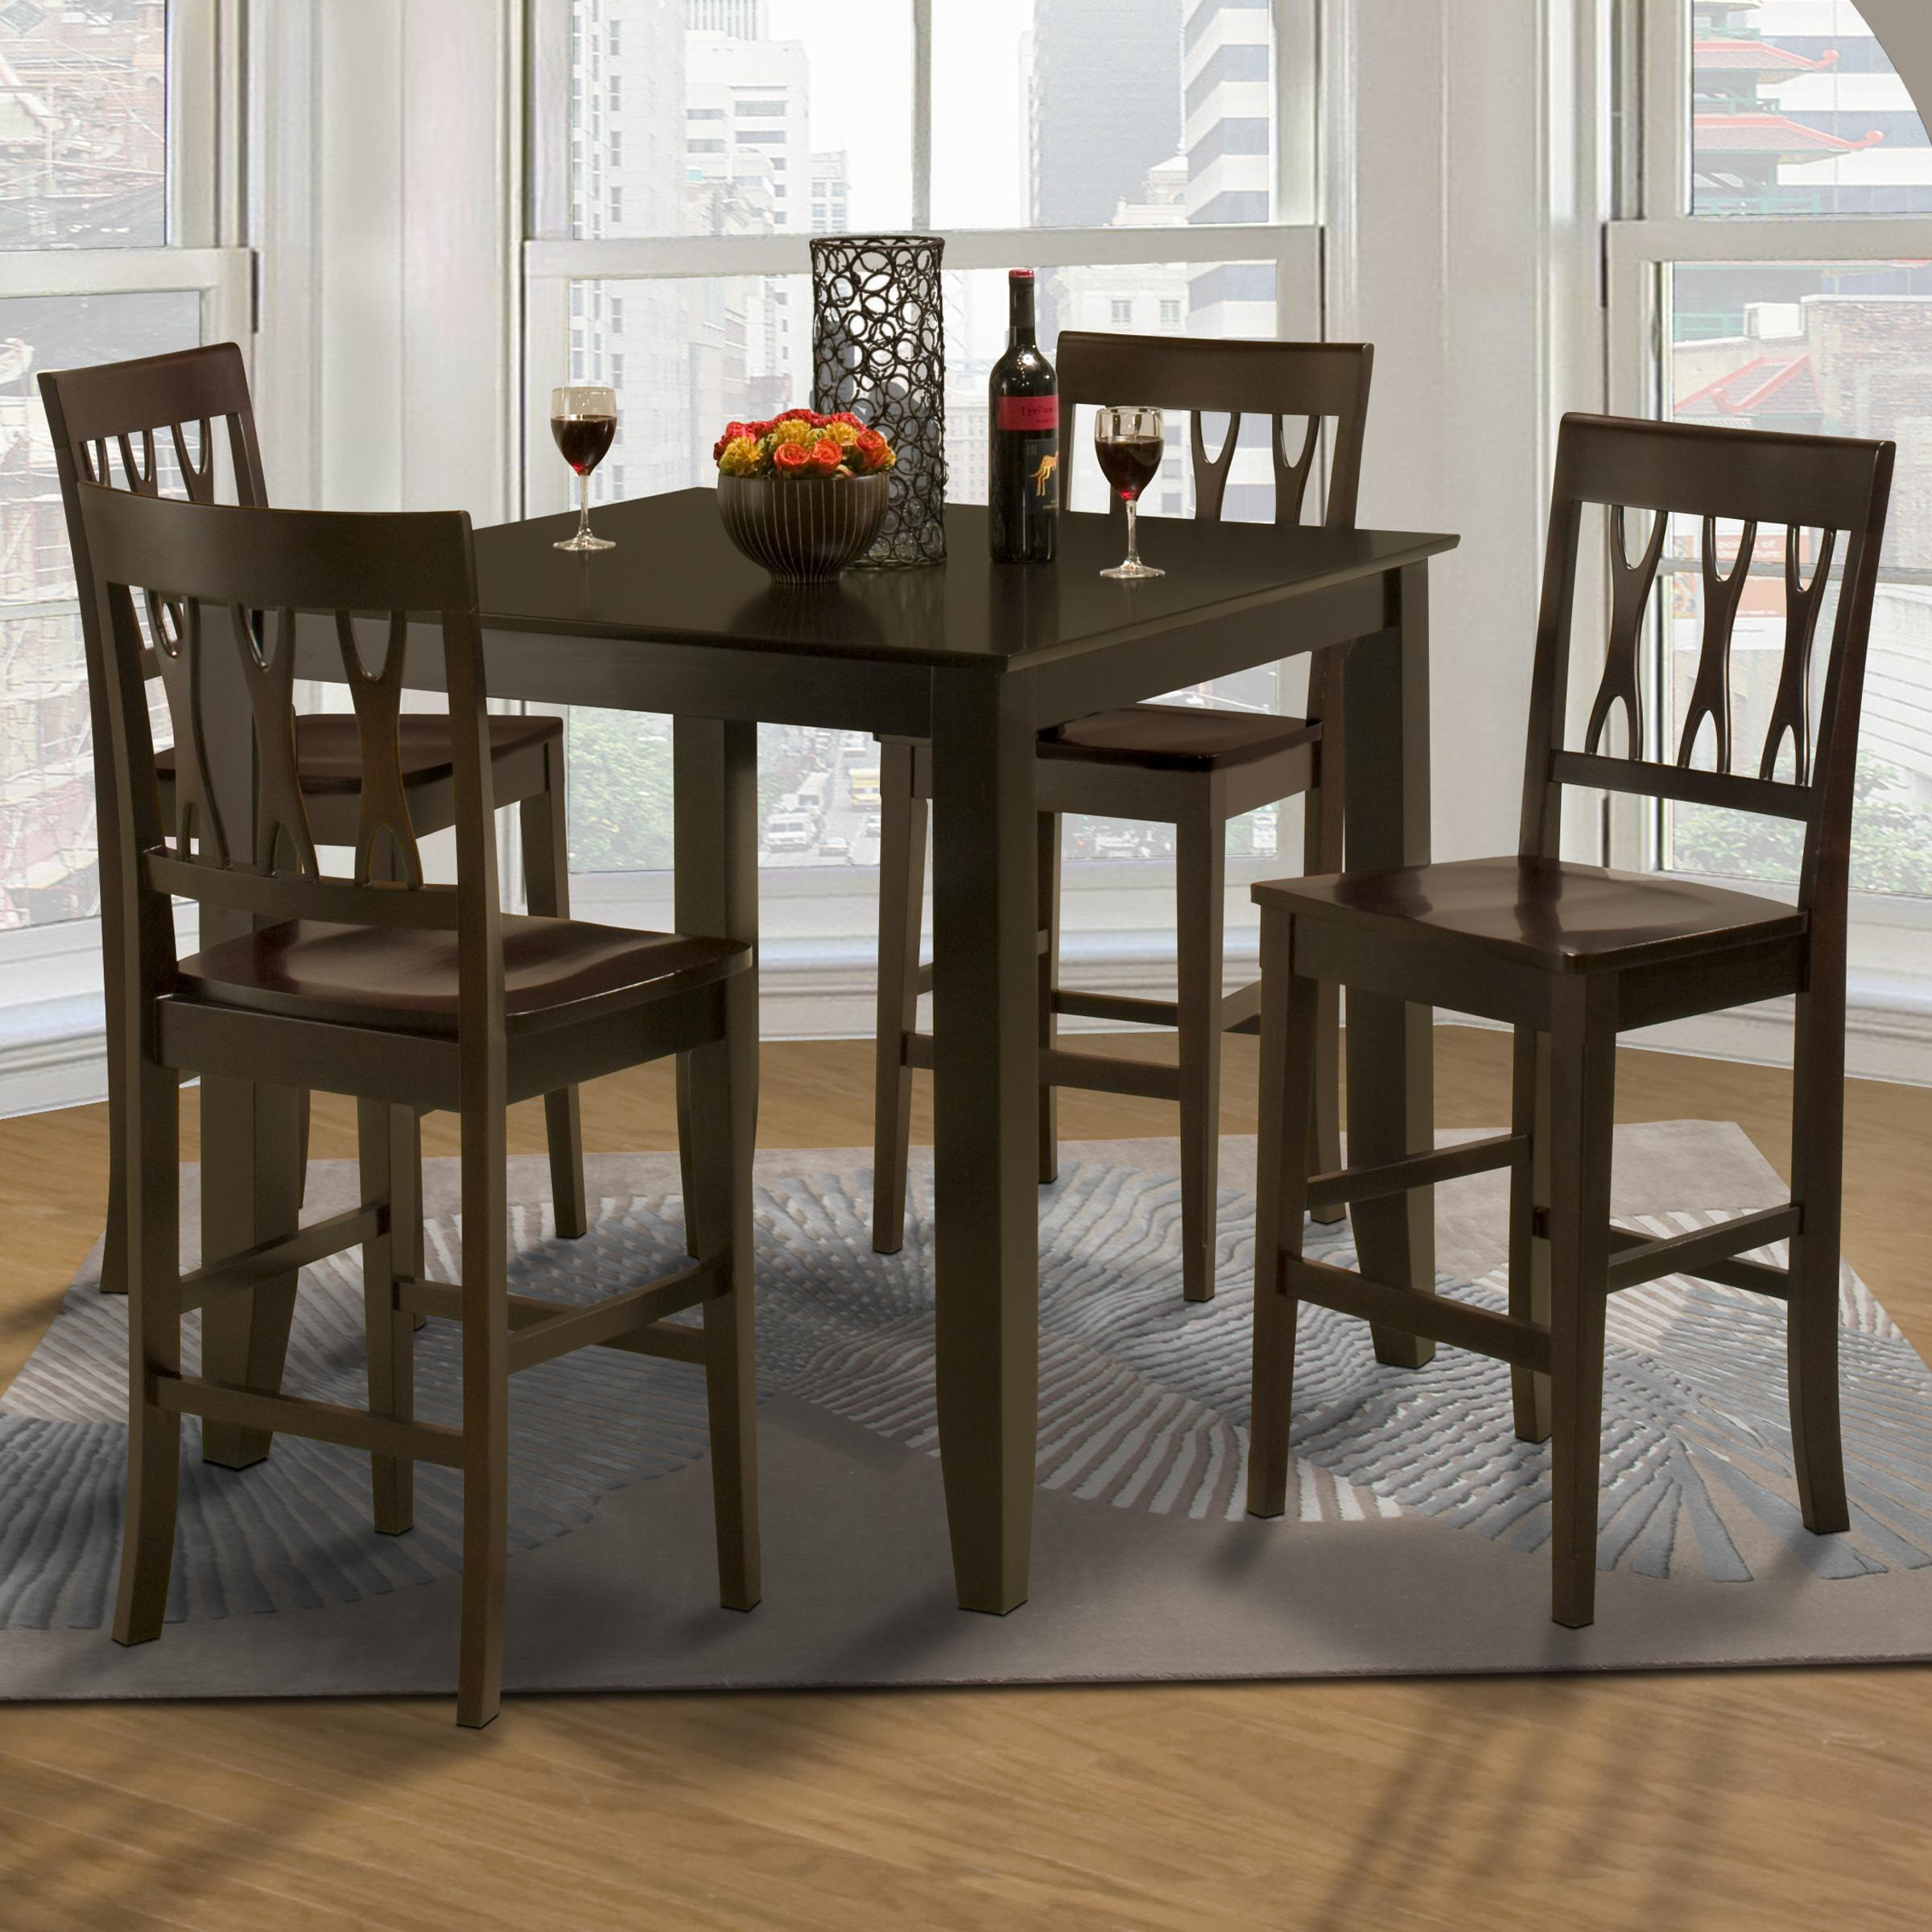 counter height table and chair sets revolving repair in trivandrum new classic style 19 small abbie